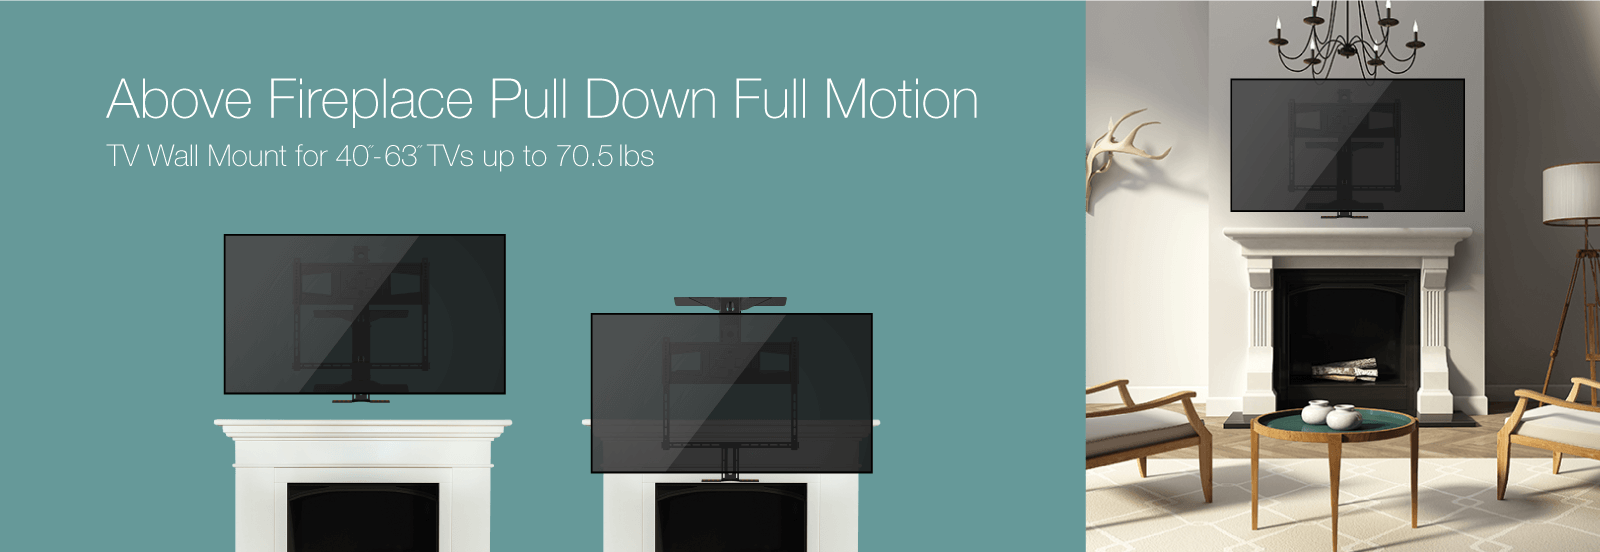 Monoprice Above Fireplace PullDown FullMotion